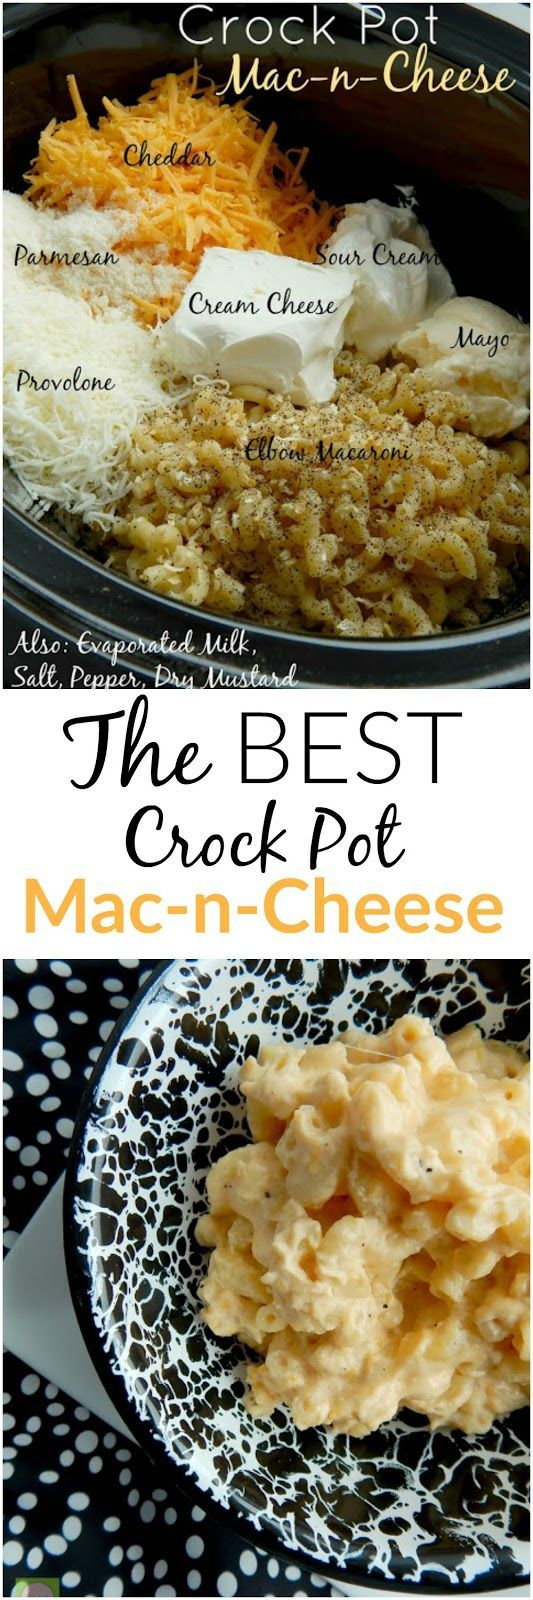 The BEST Crock Pot Mac-n-Cheese around!  Creamy, smooth, cheesy...a definite crowd pleaser.